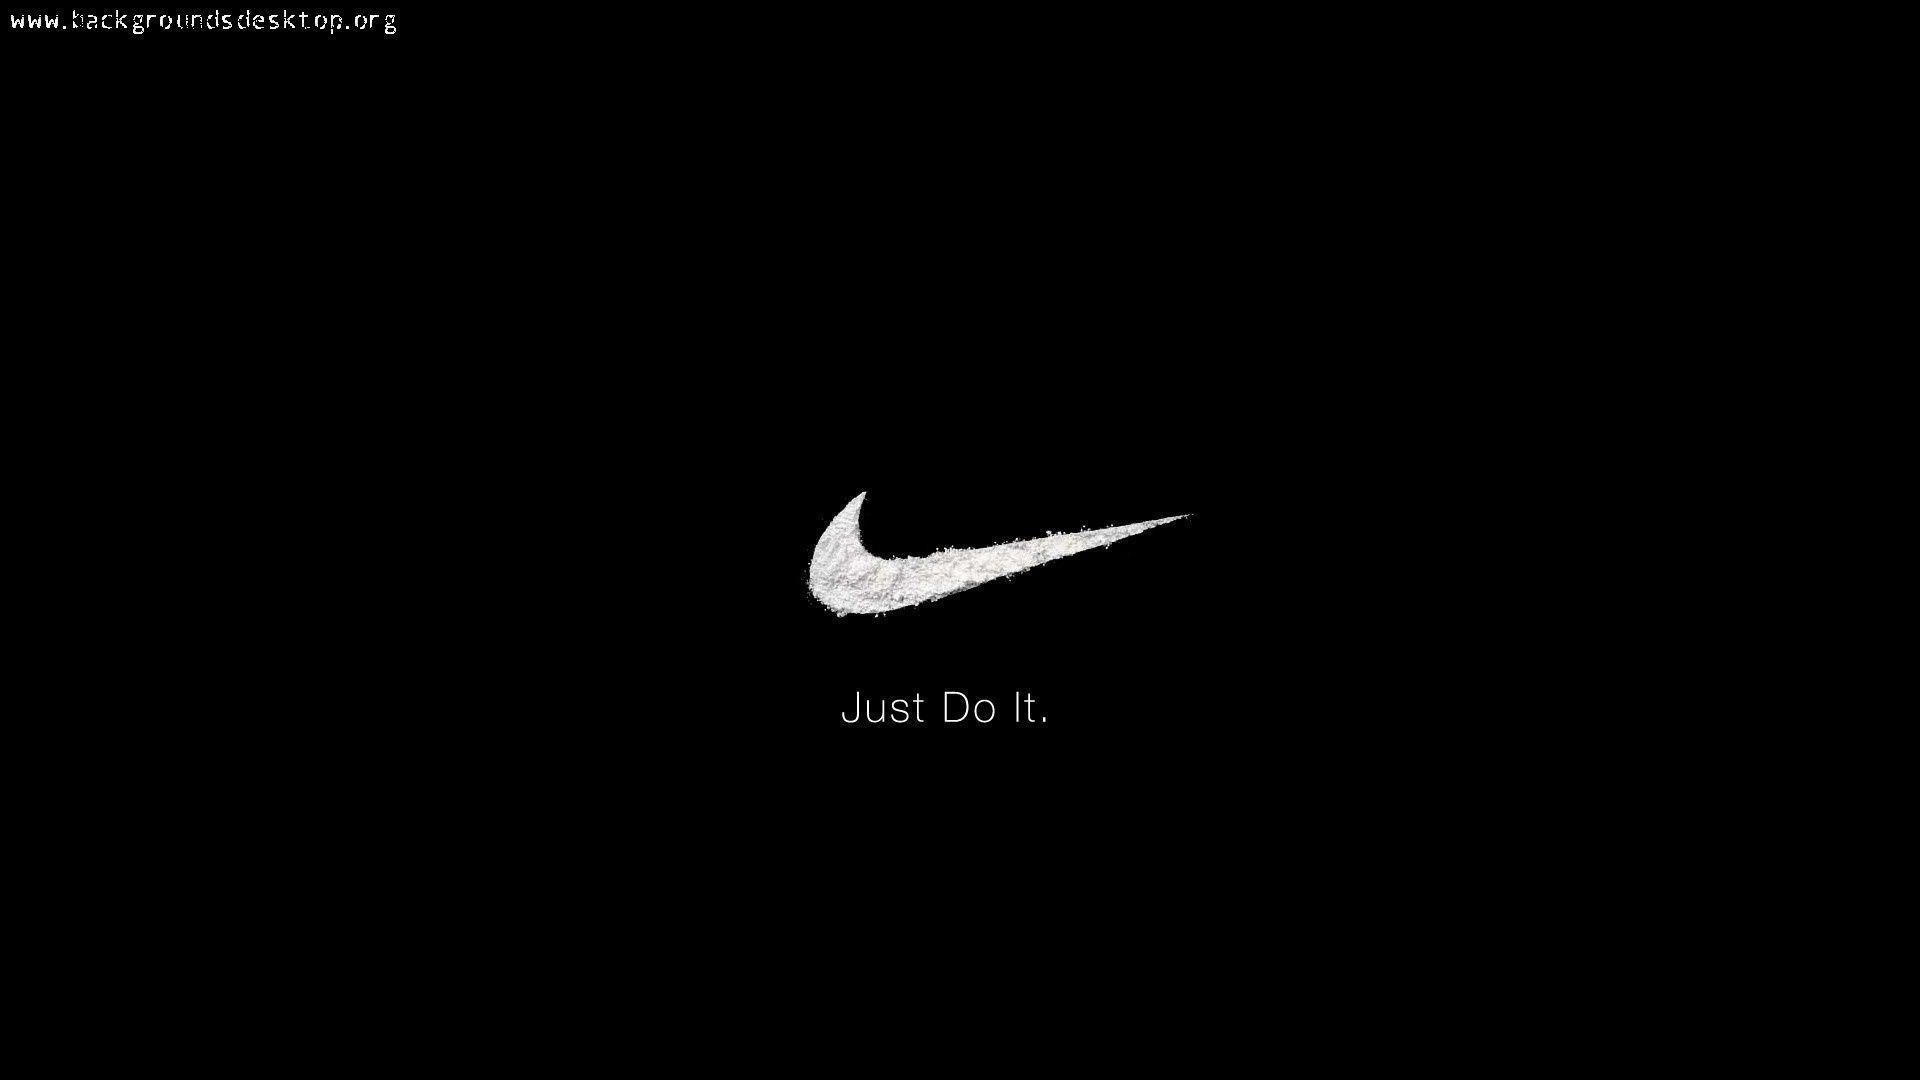 Nike Just Do It 9 200810 High Definition Wallpapers| wallalay.